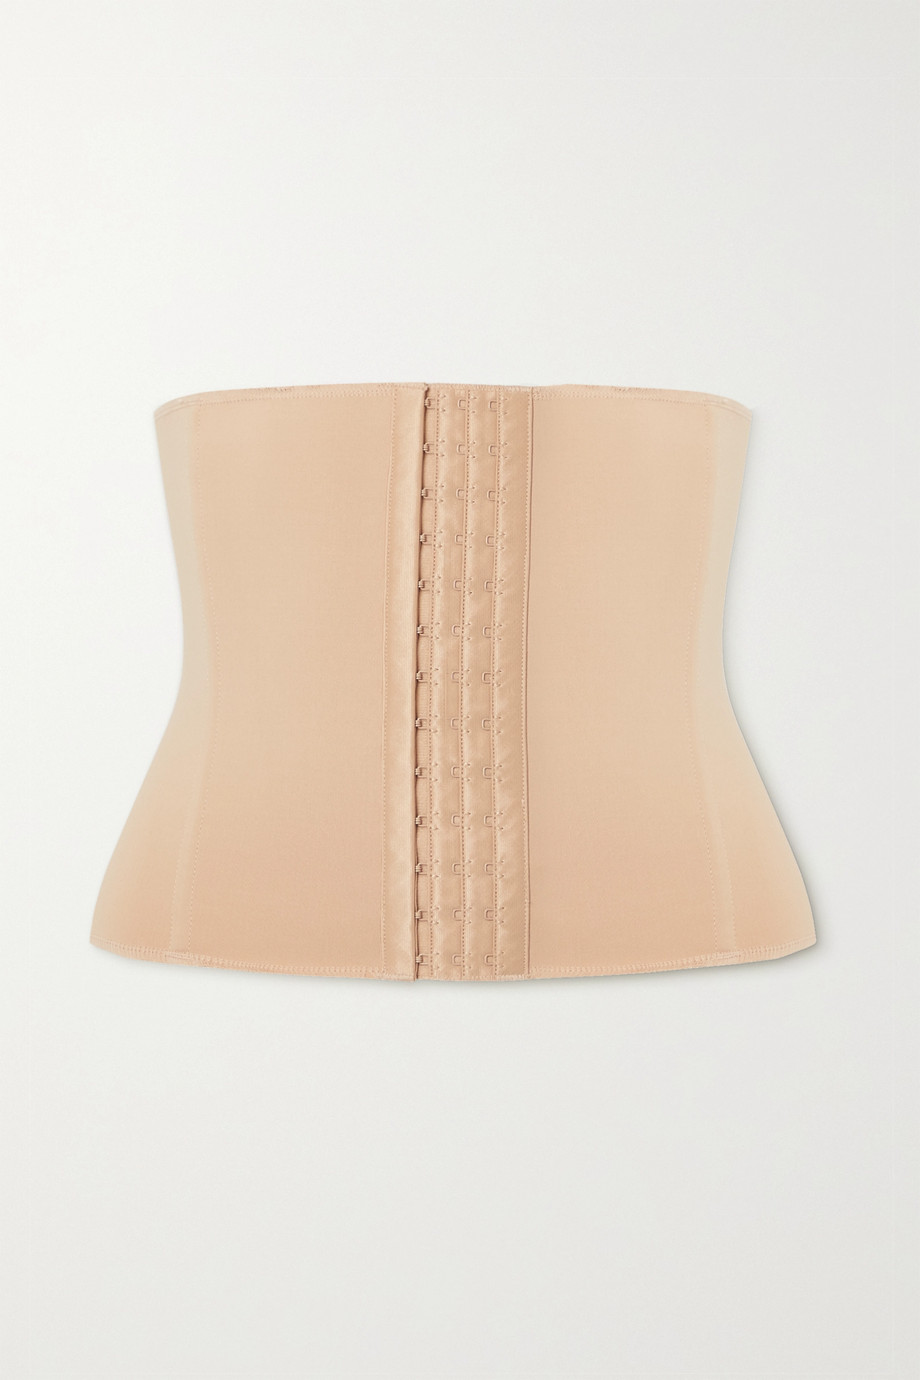 SKIMS Waist Trainer – Clay – Taillenmieder aus Stretch-Neopren